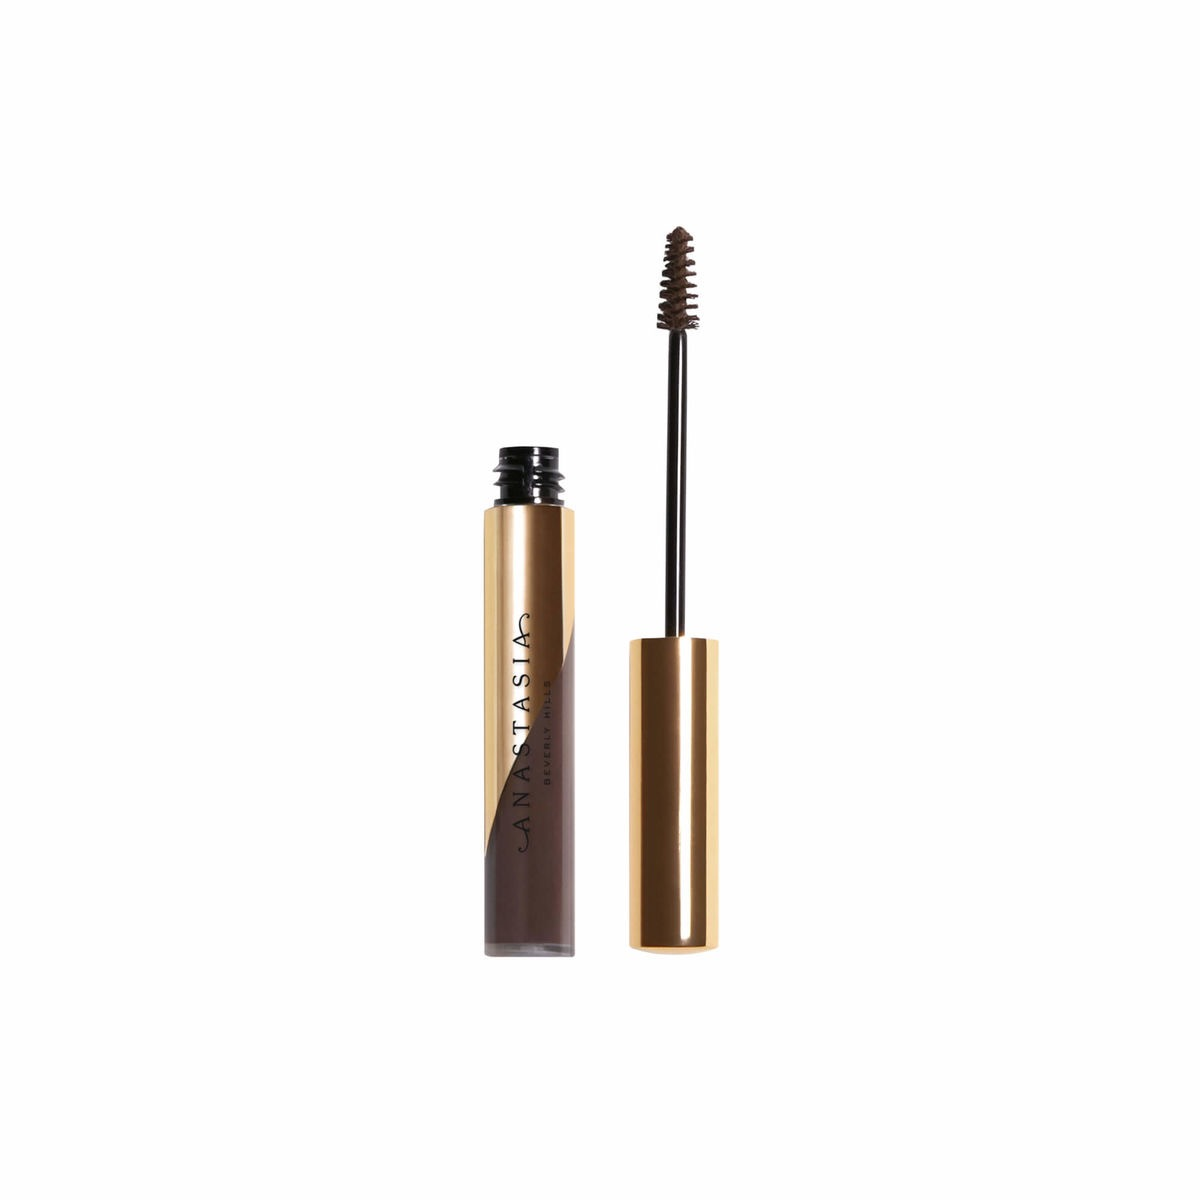 anastasia beverly hills dipbrow gel, summer beauty products